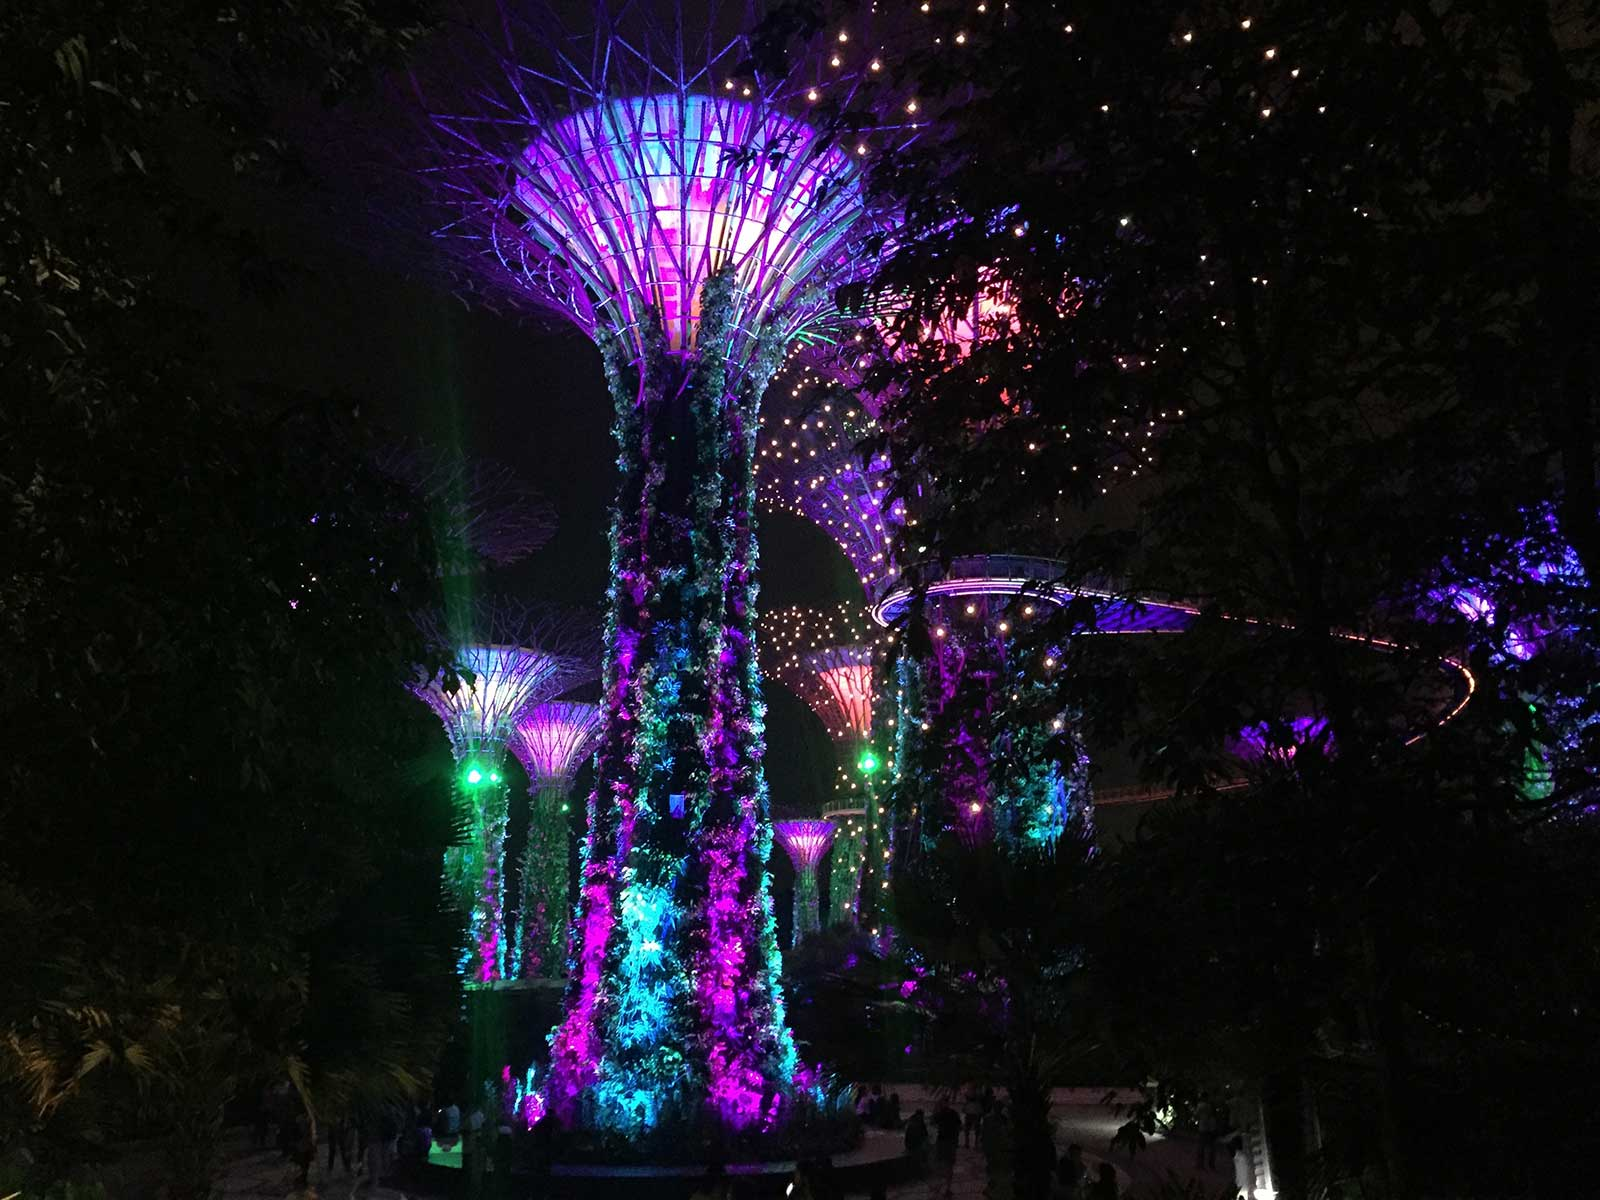 Sehenswürdigkeiten in Singapur; Supertrees, Gardens by the Bay